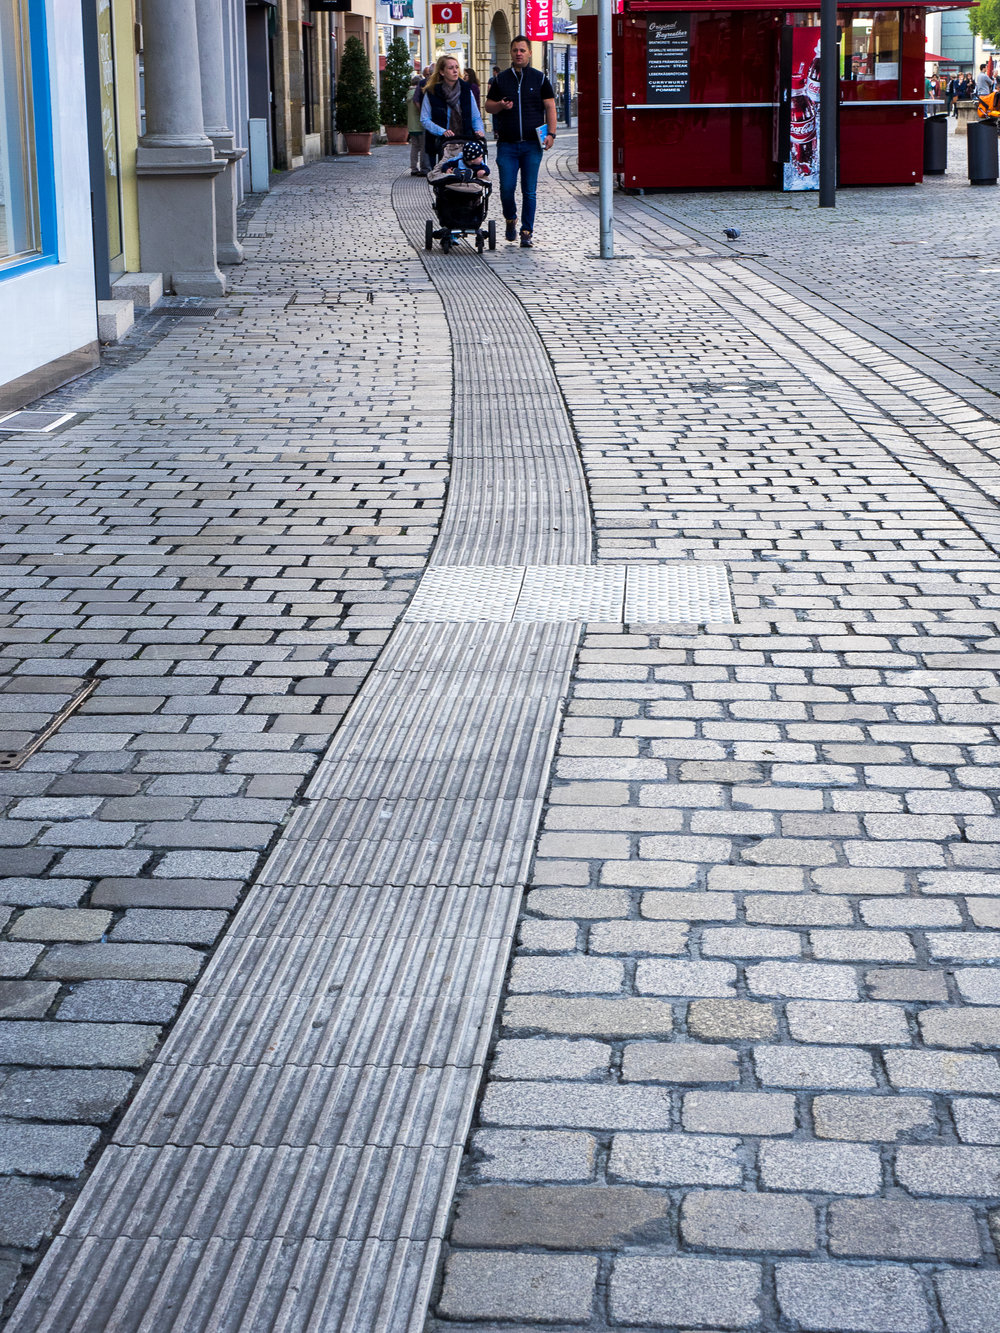 The grooved sidewalk strip is for blind people and where it juts out indicates to them where there is a street crossing light!